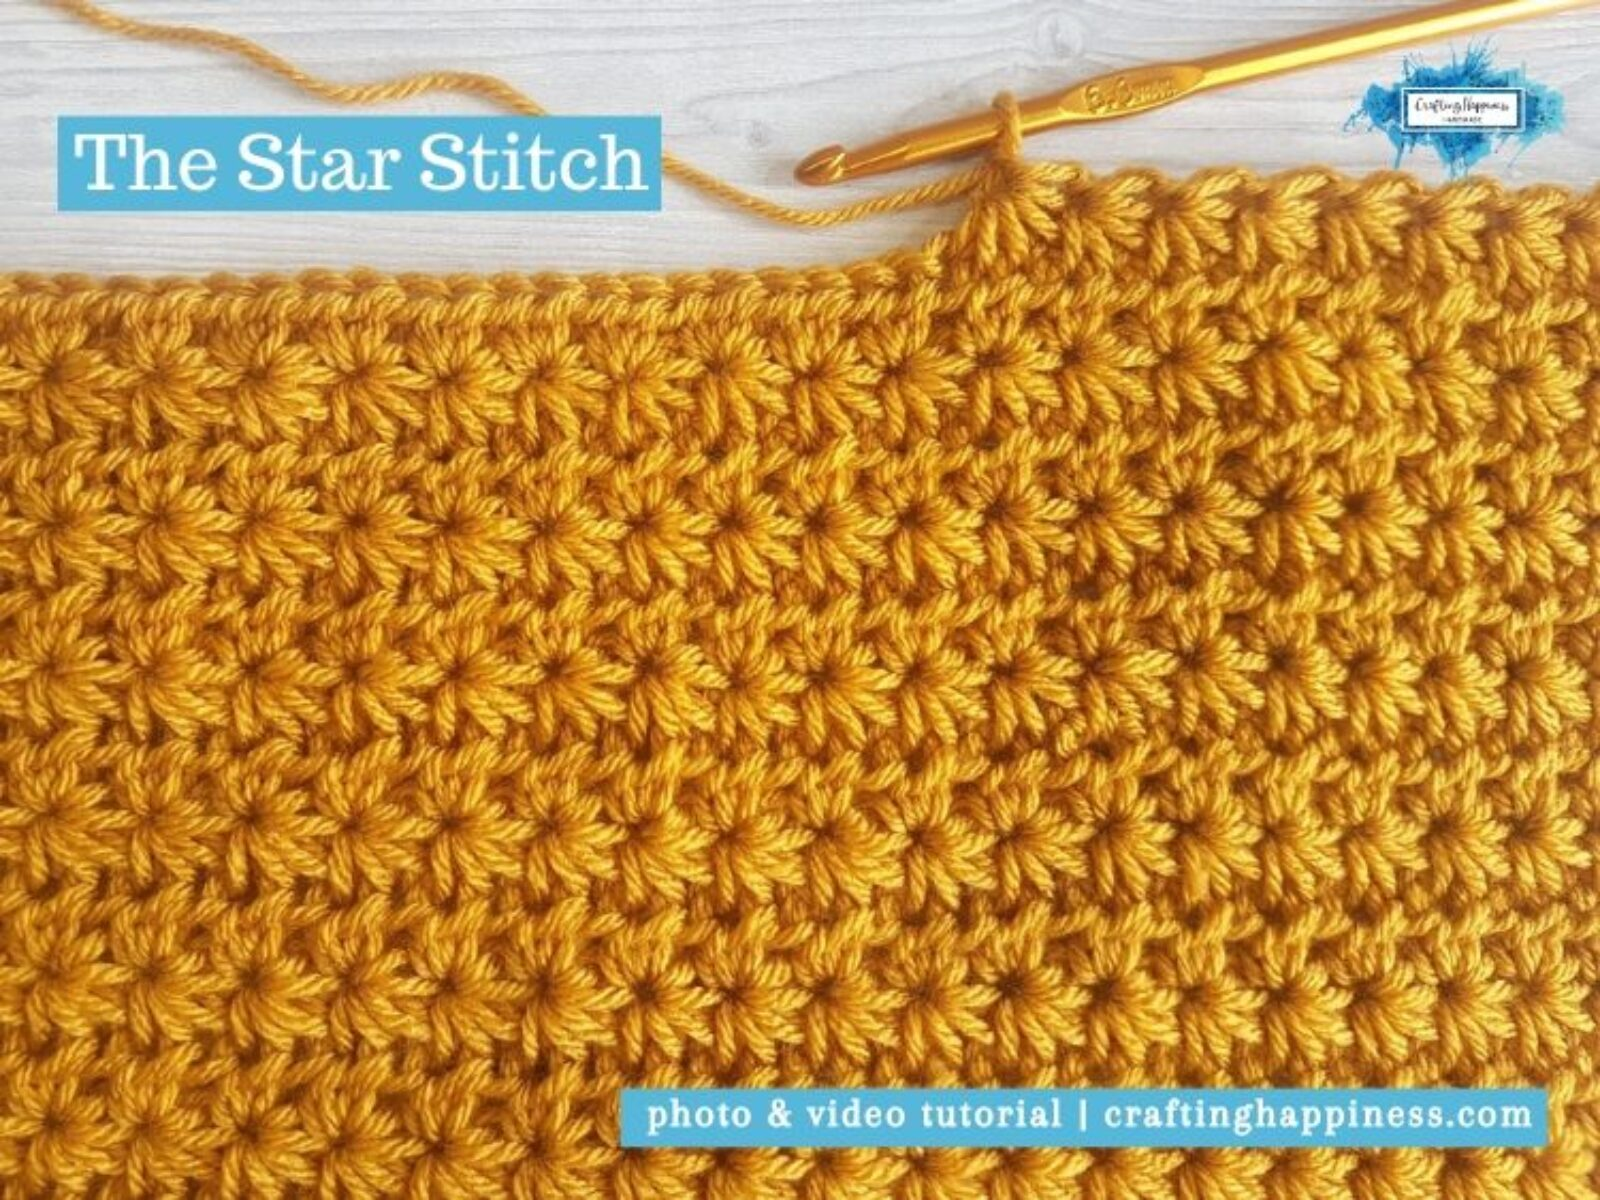 The Star Stitch by Crafting Happiness FACEBOOK POSTER